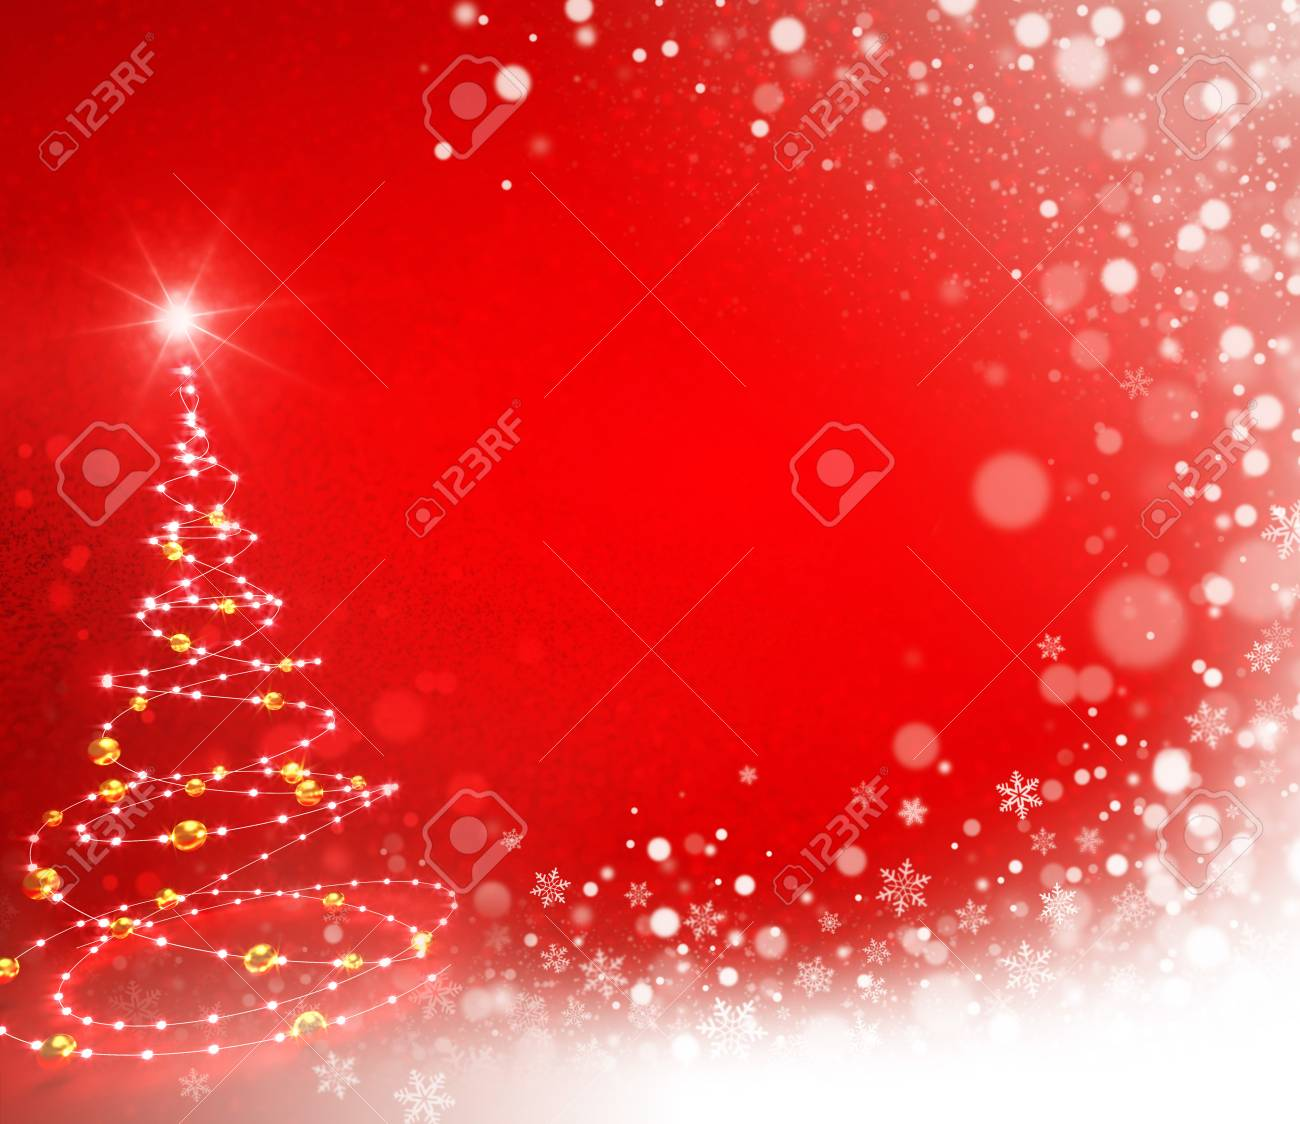 abstract christmas tree illustrated with light strings in a snow wave on a red colored